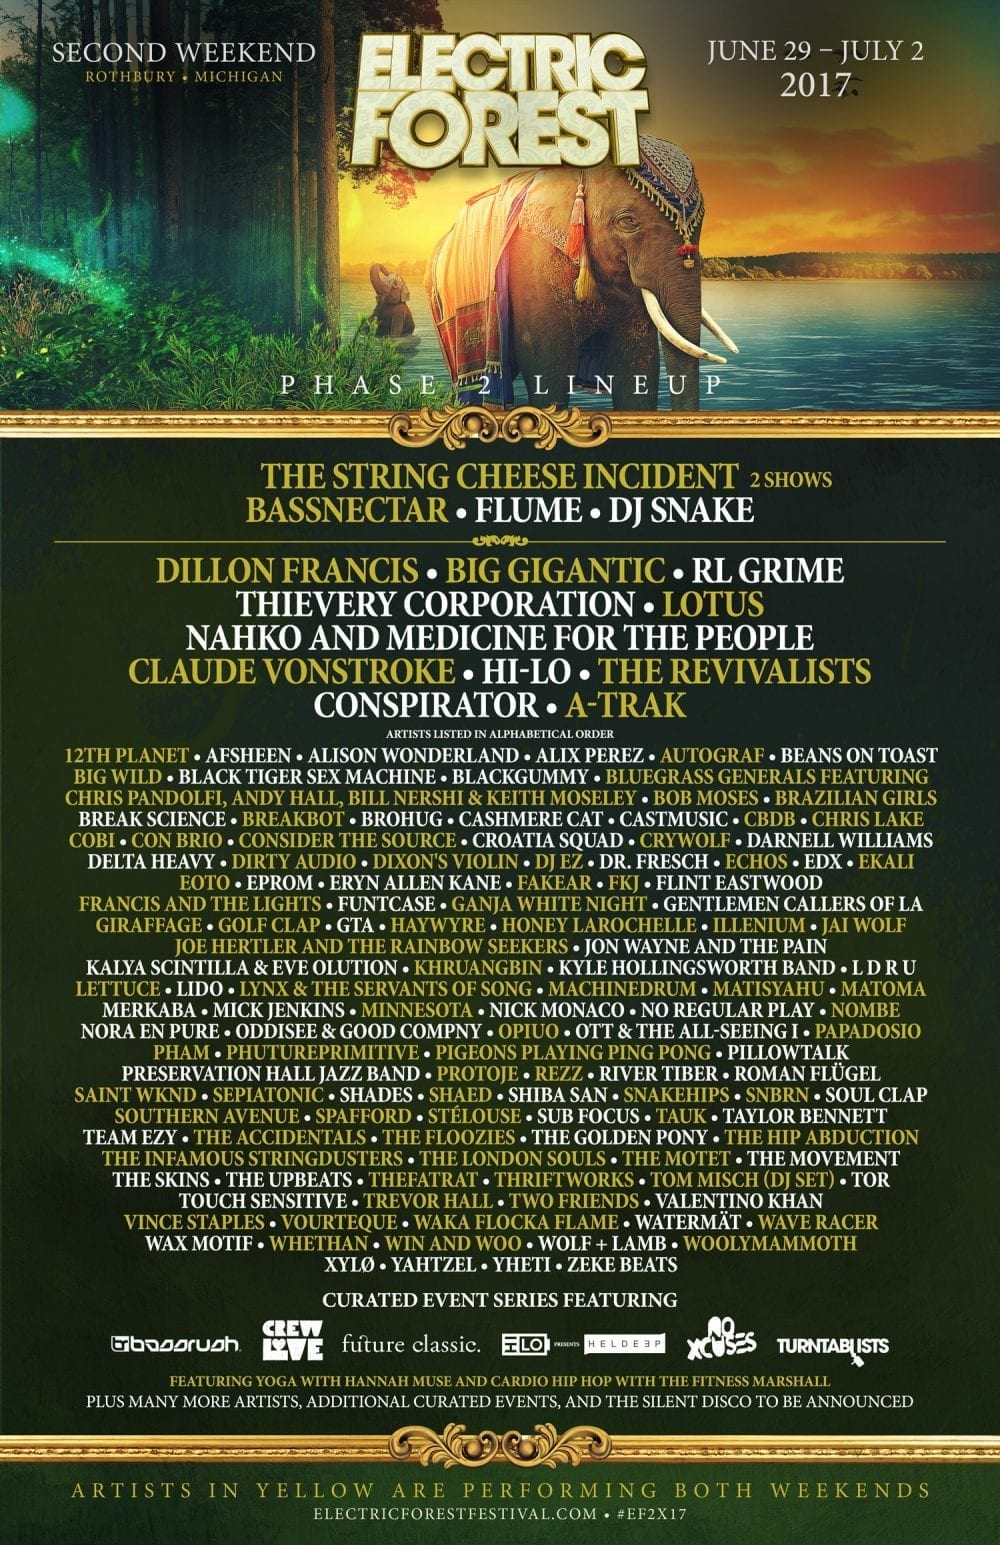 Electric Forest 2017 Festival Poster